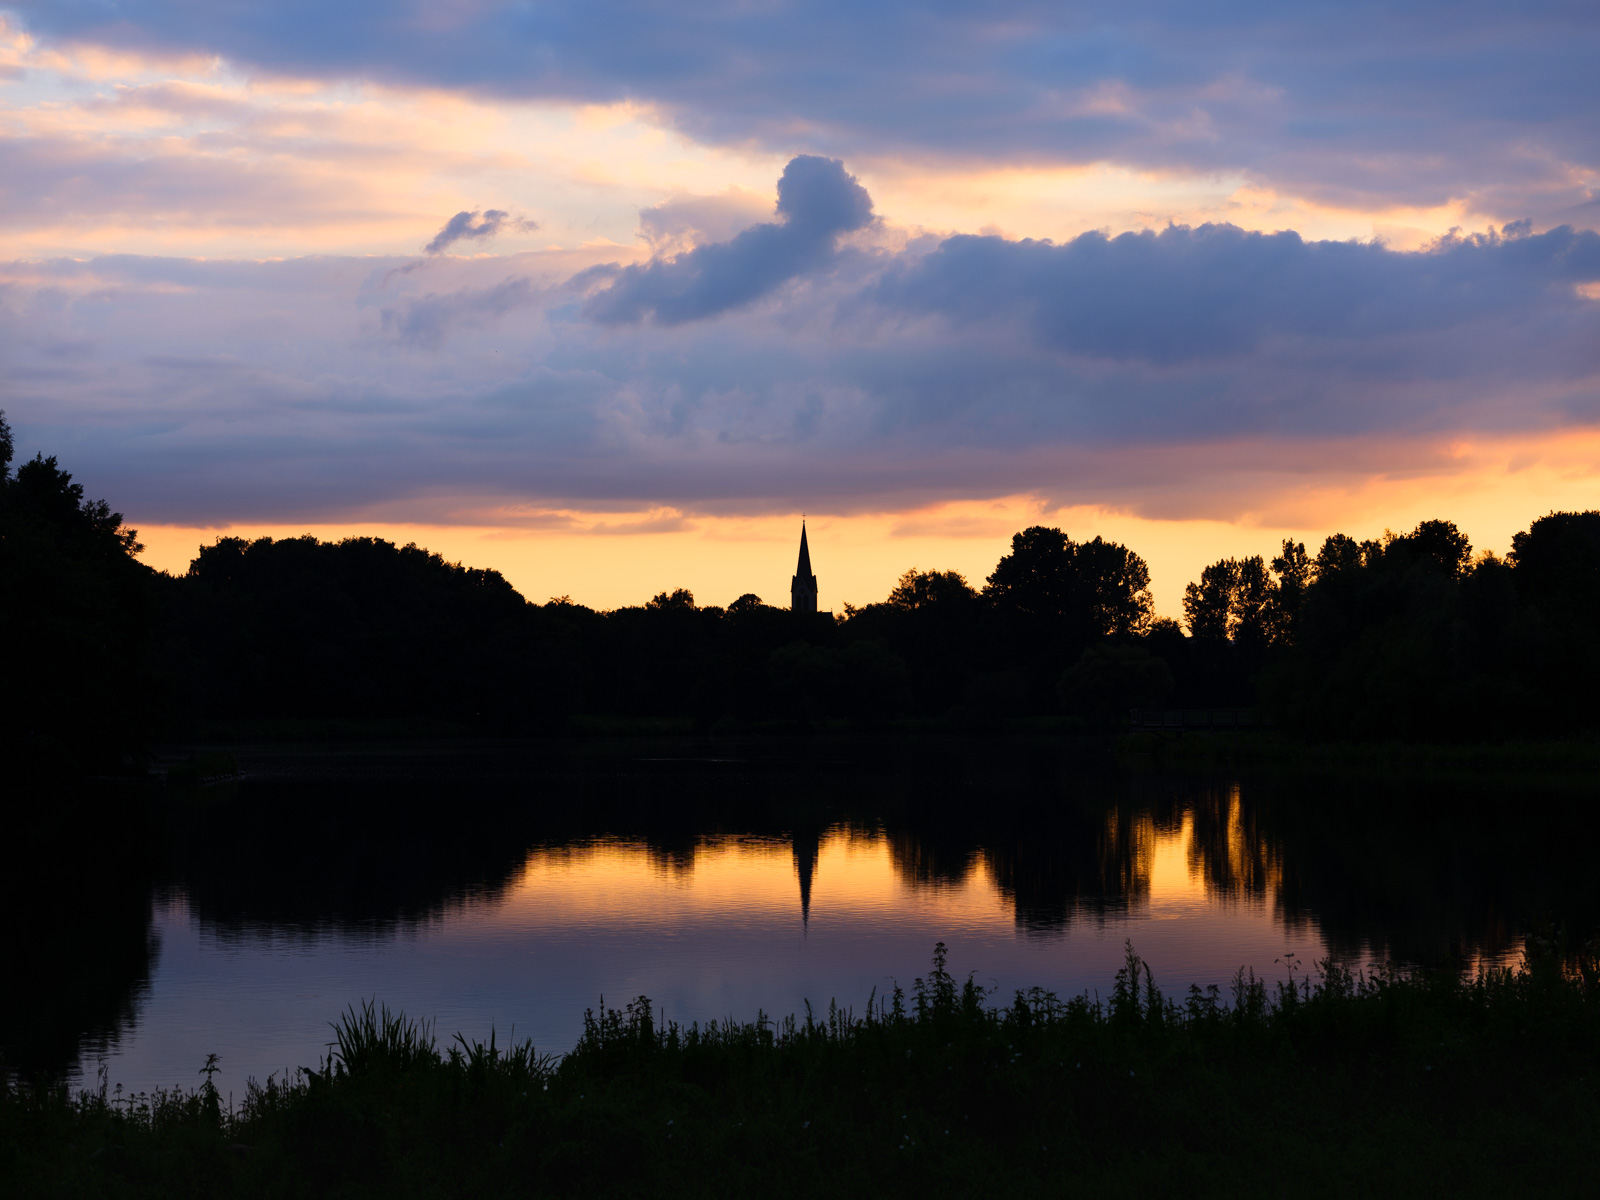 Summer evening at 'Obersee' in July 2020 (Bielefeld, Germany).